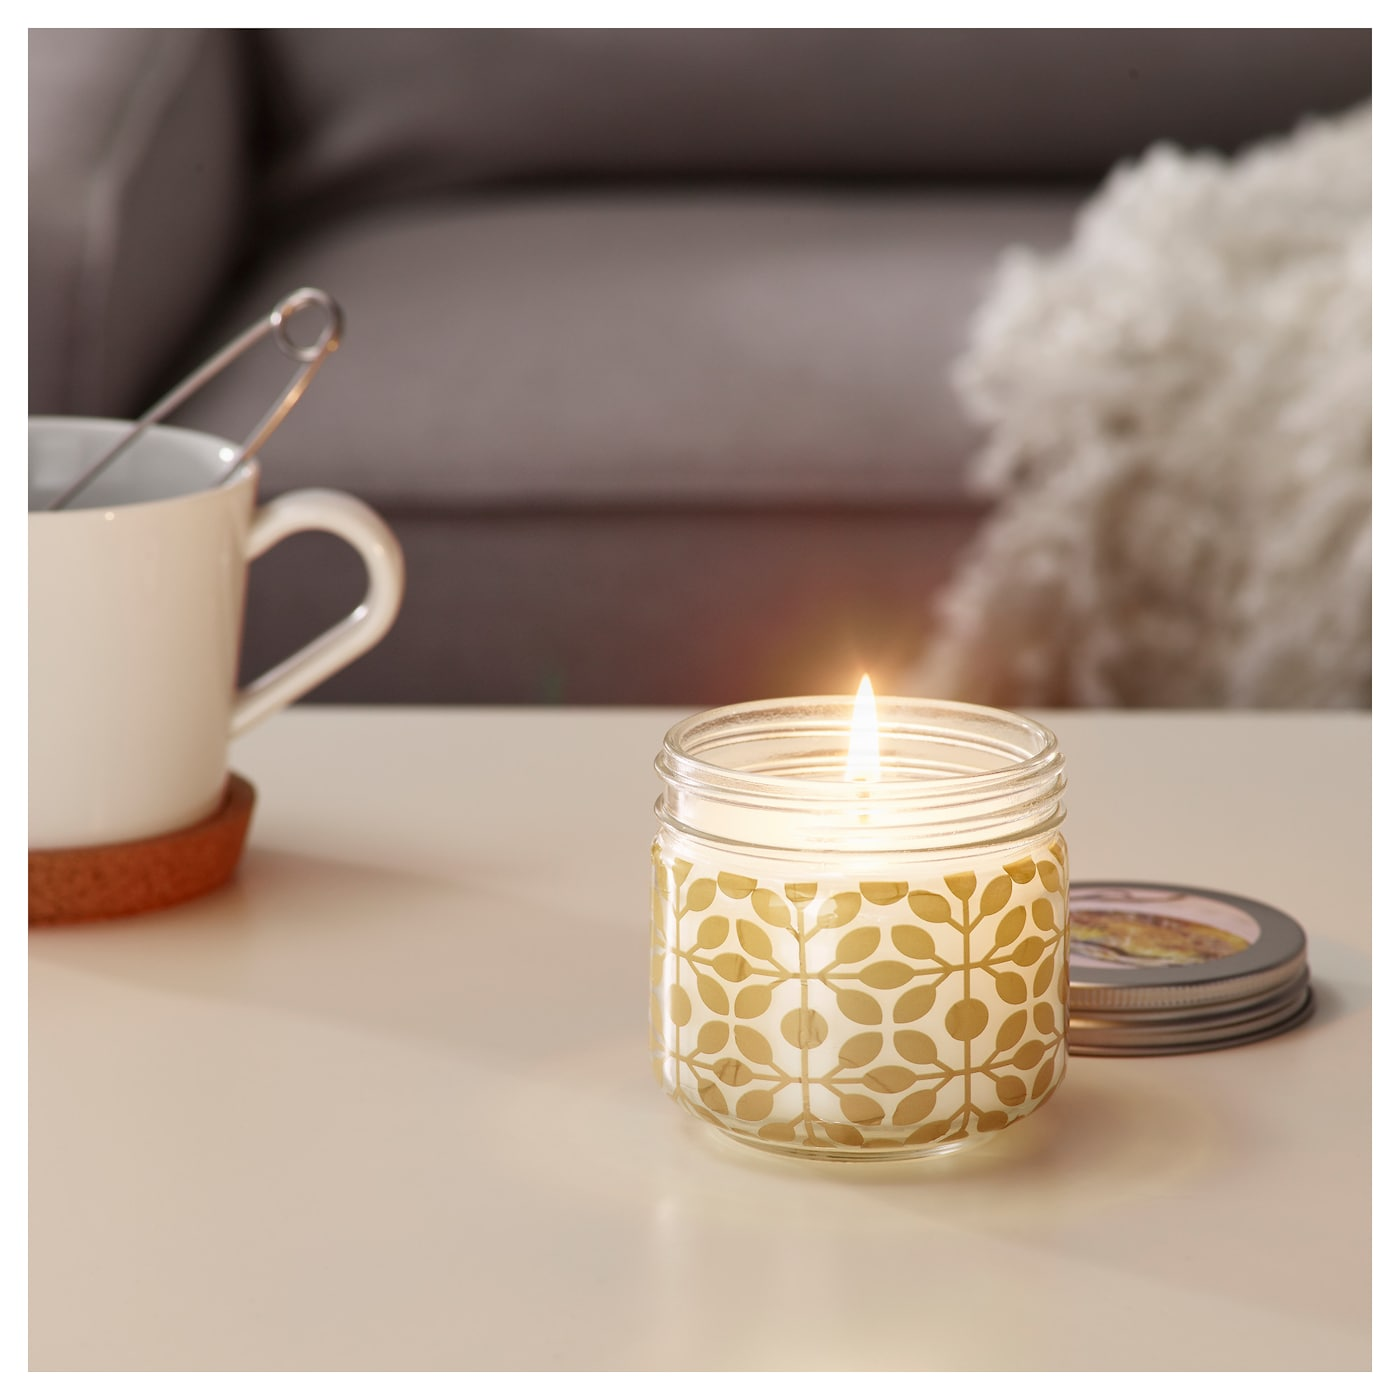 IKEA FÖRLIKA scented candle in glass